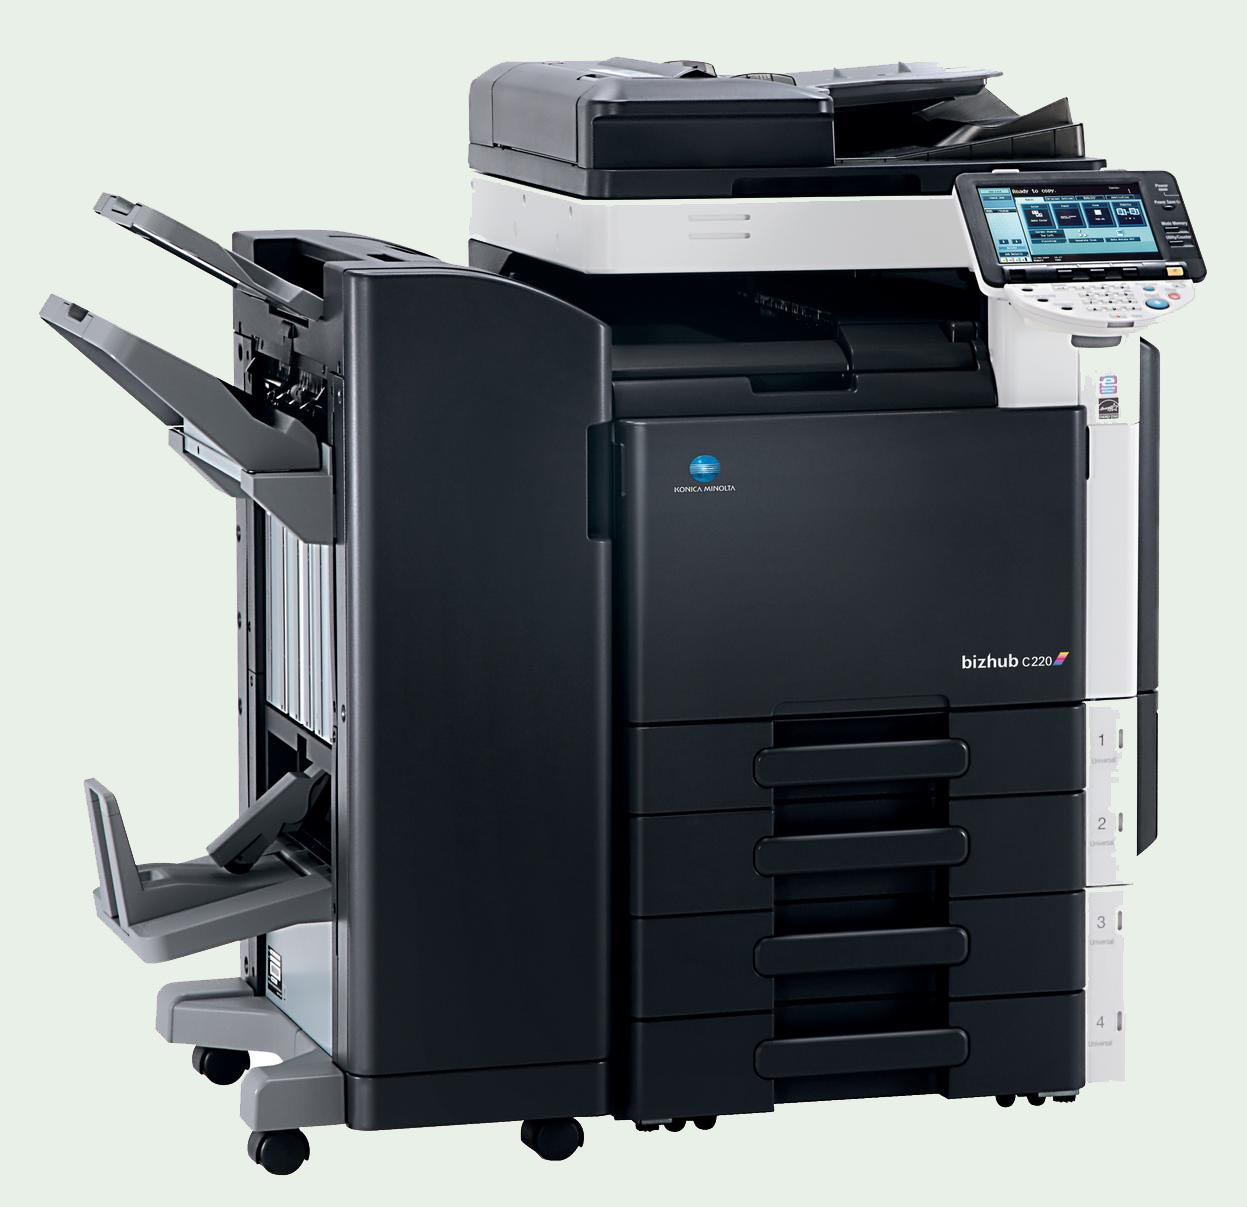 Bizhub C280 Printer Drivers Windows Xp